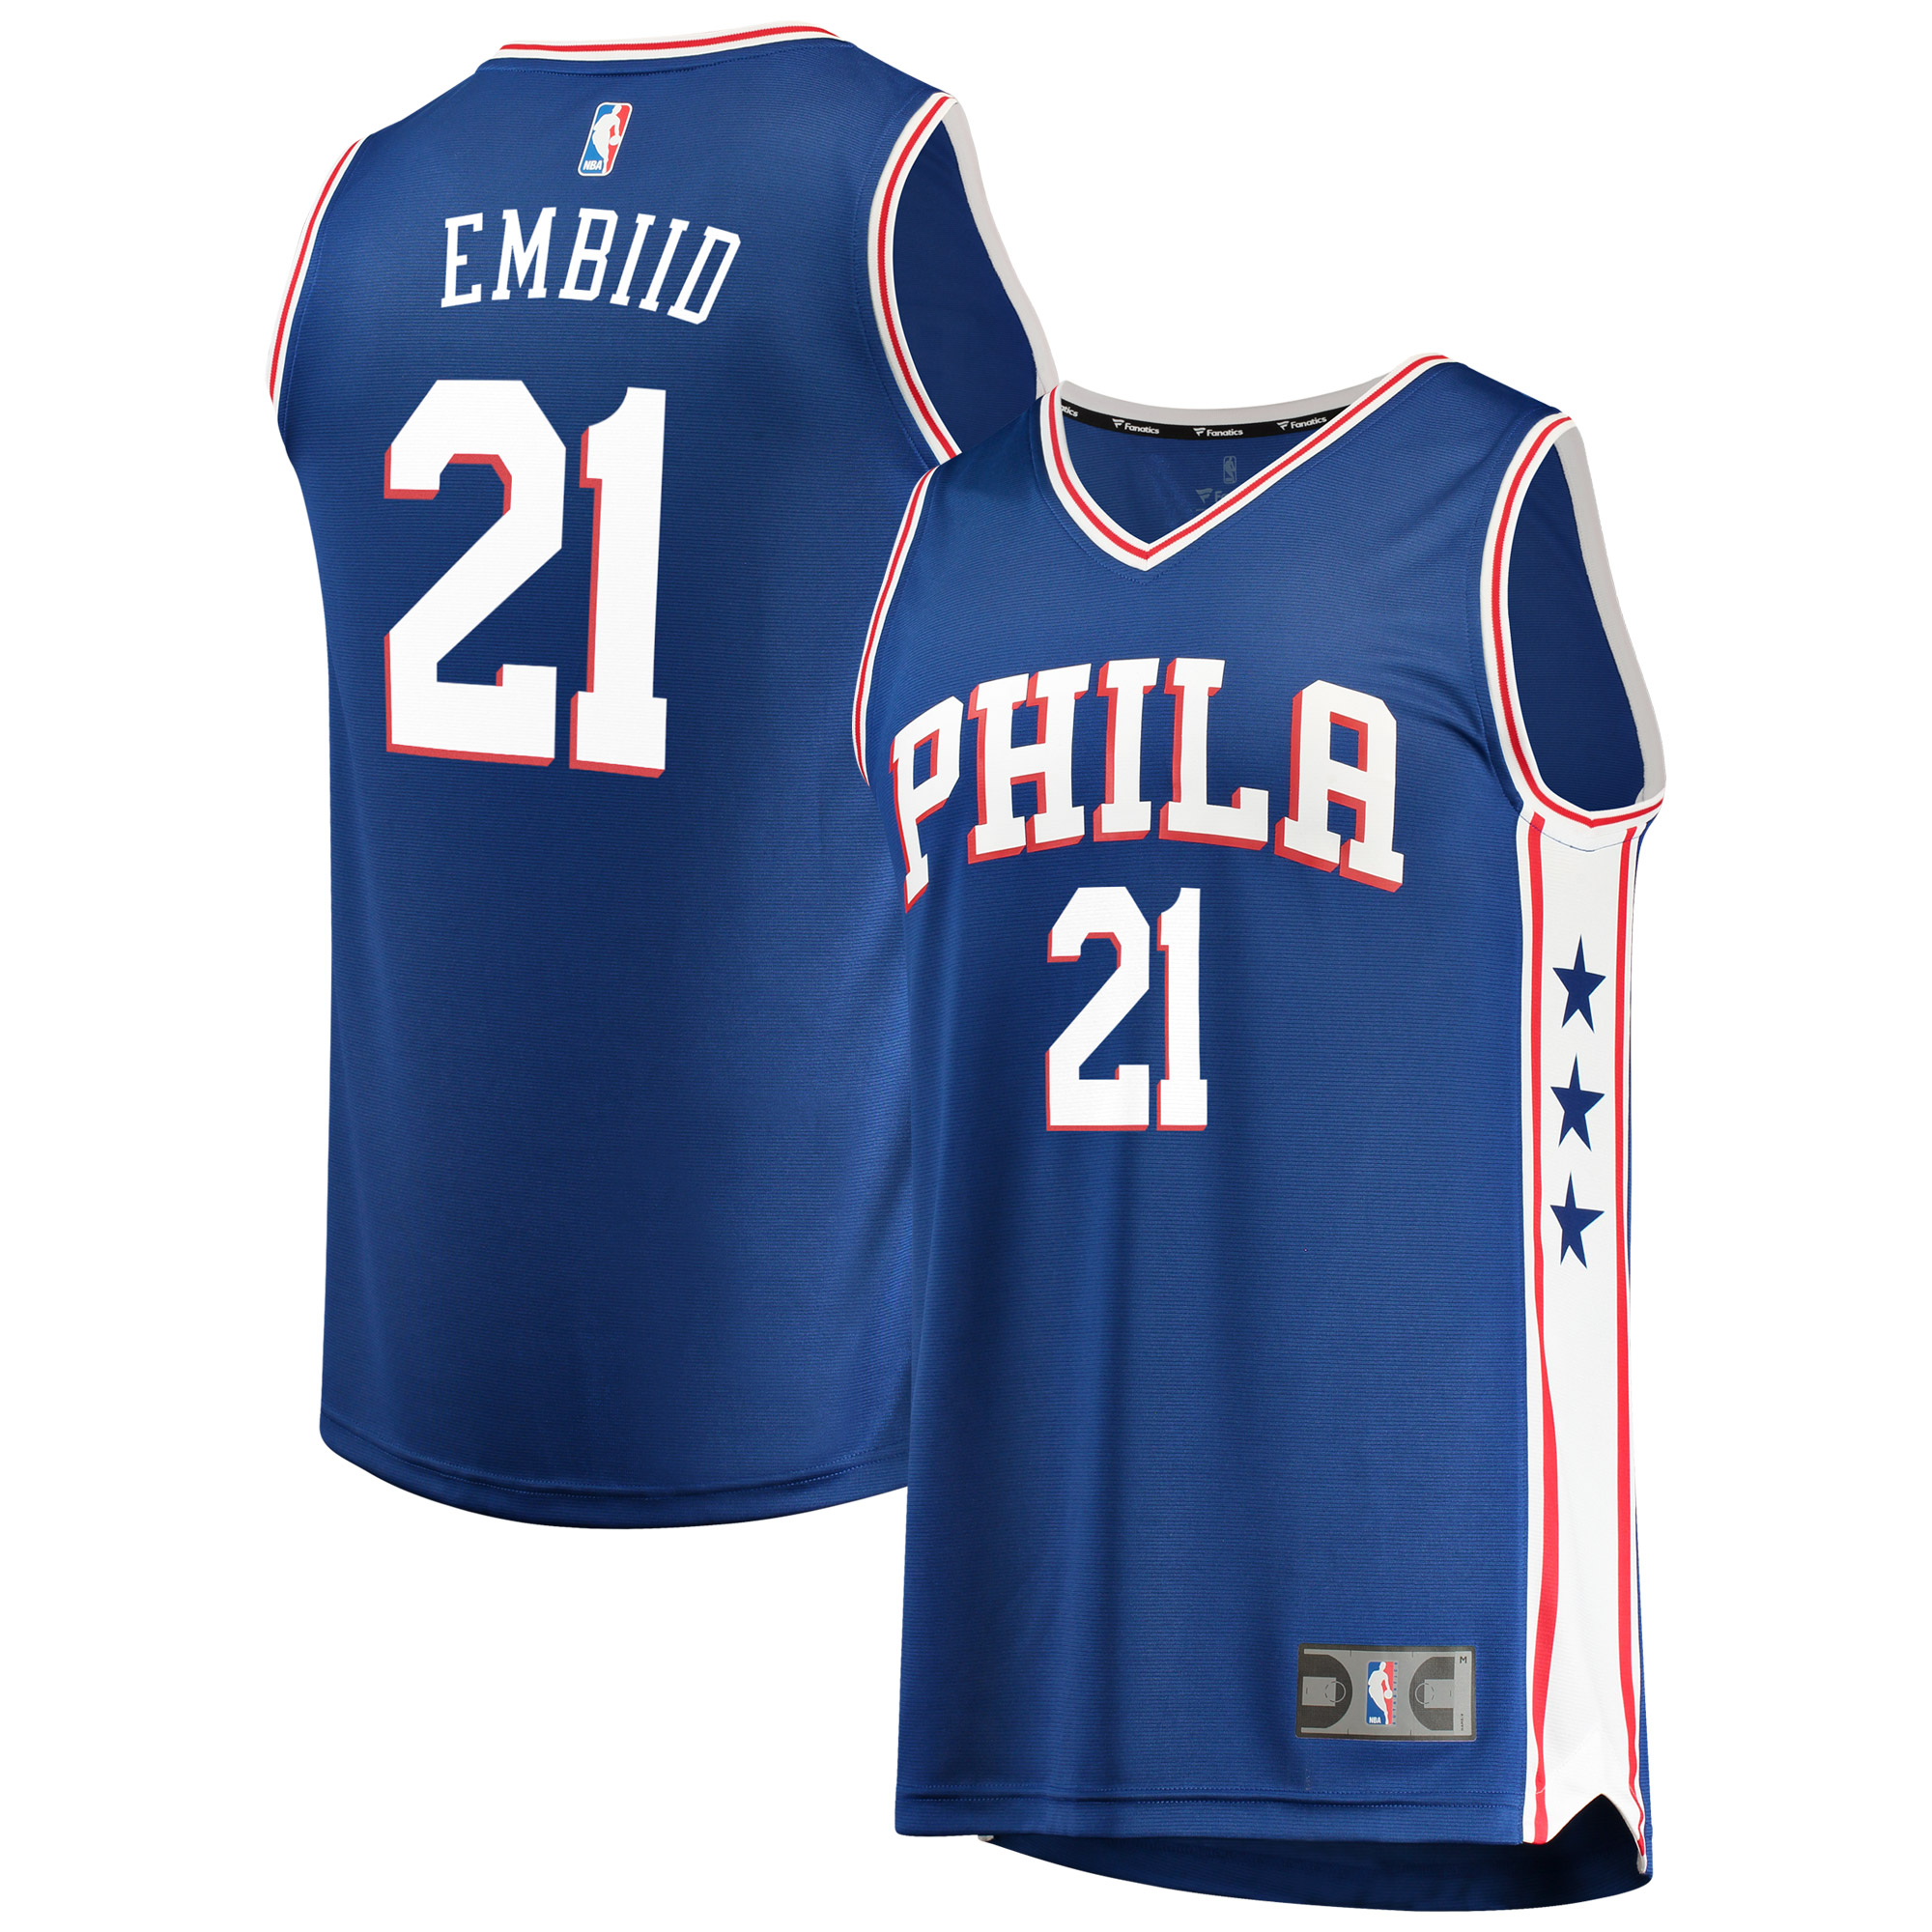 Joel Embiid Philadelphia 76ers Fanatics Branded Fast Break Replica Jersey Royal - Icon Edition